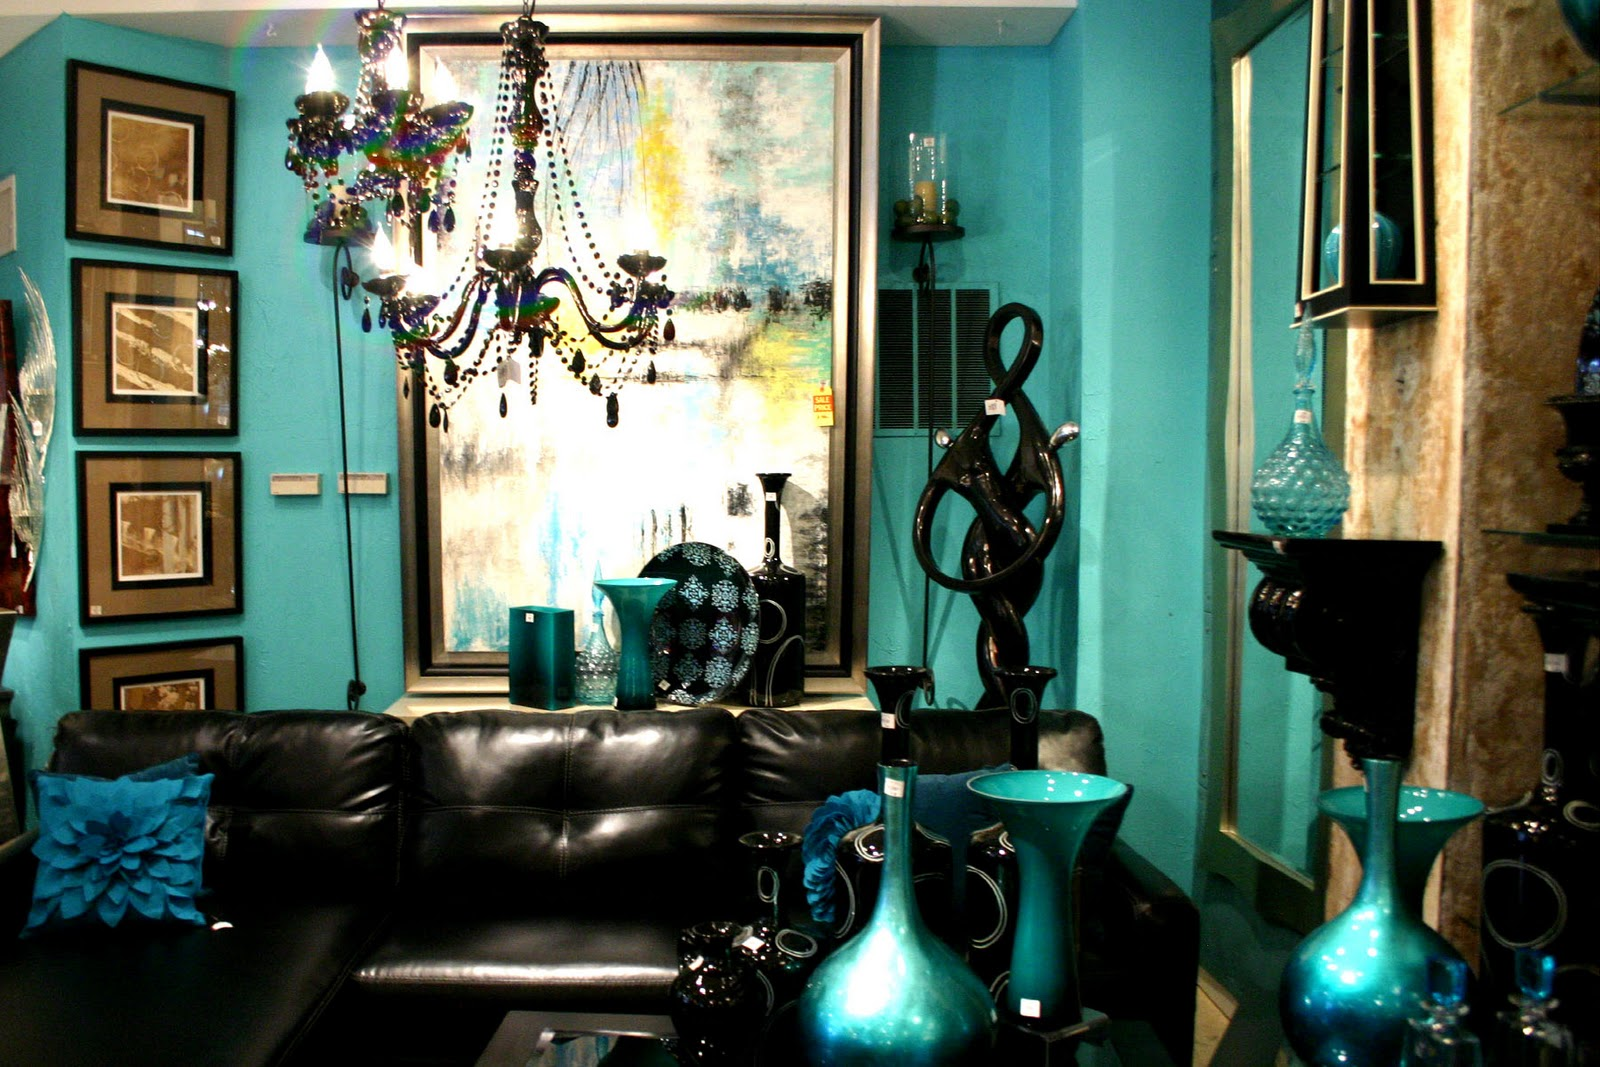 Pics for gt teal black and white living room ideas for Teal and purple living room